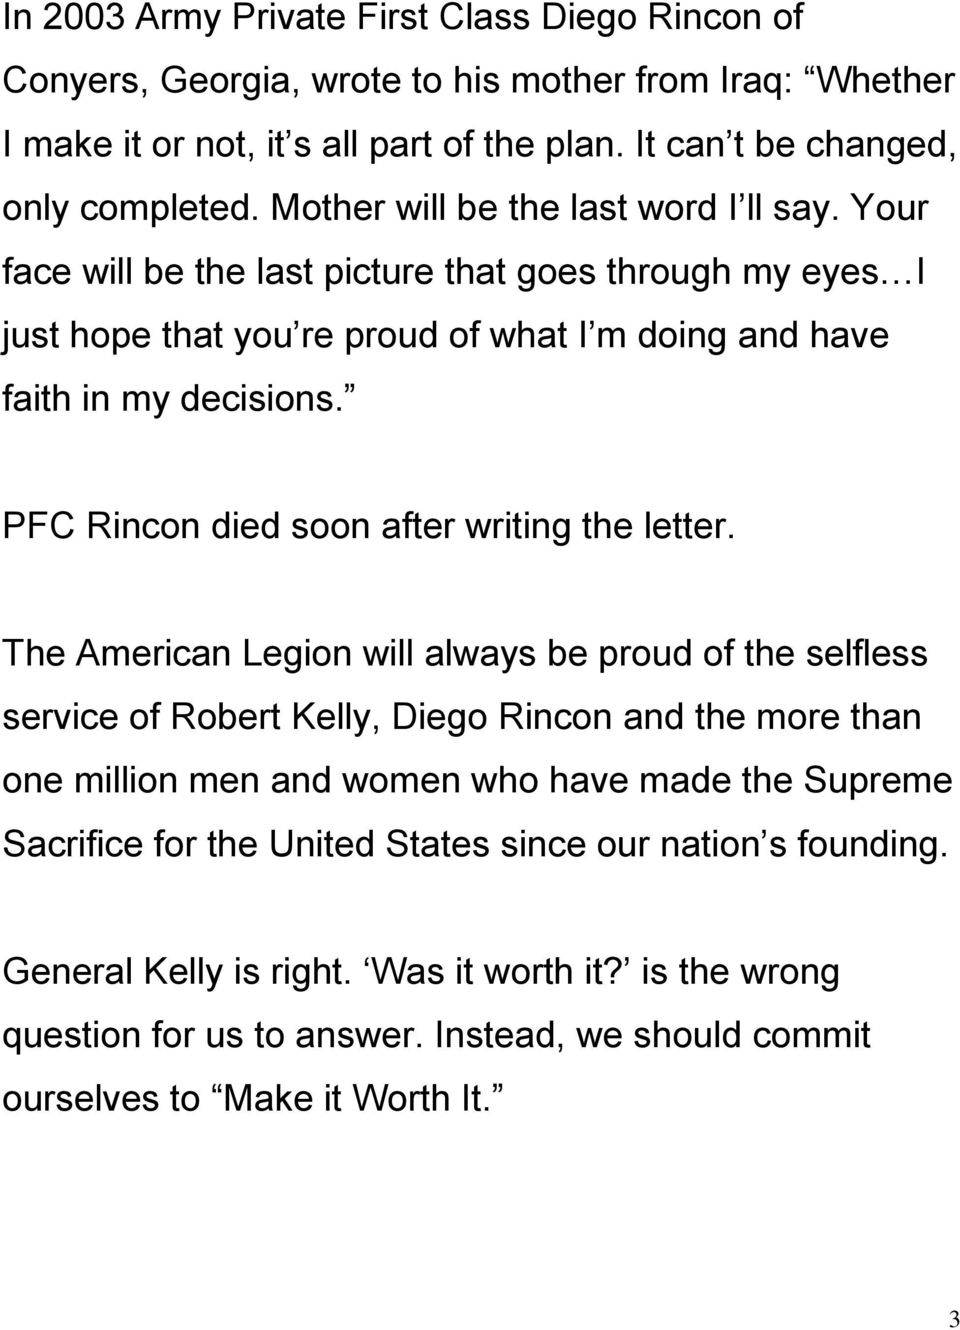 PFC Rincon died soon after writing the letter.